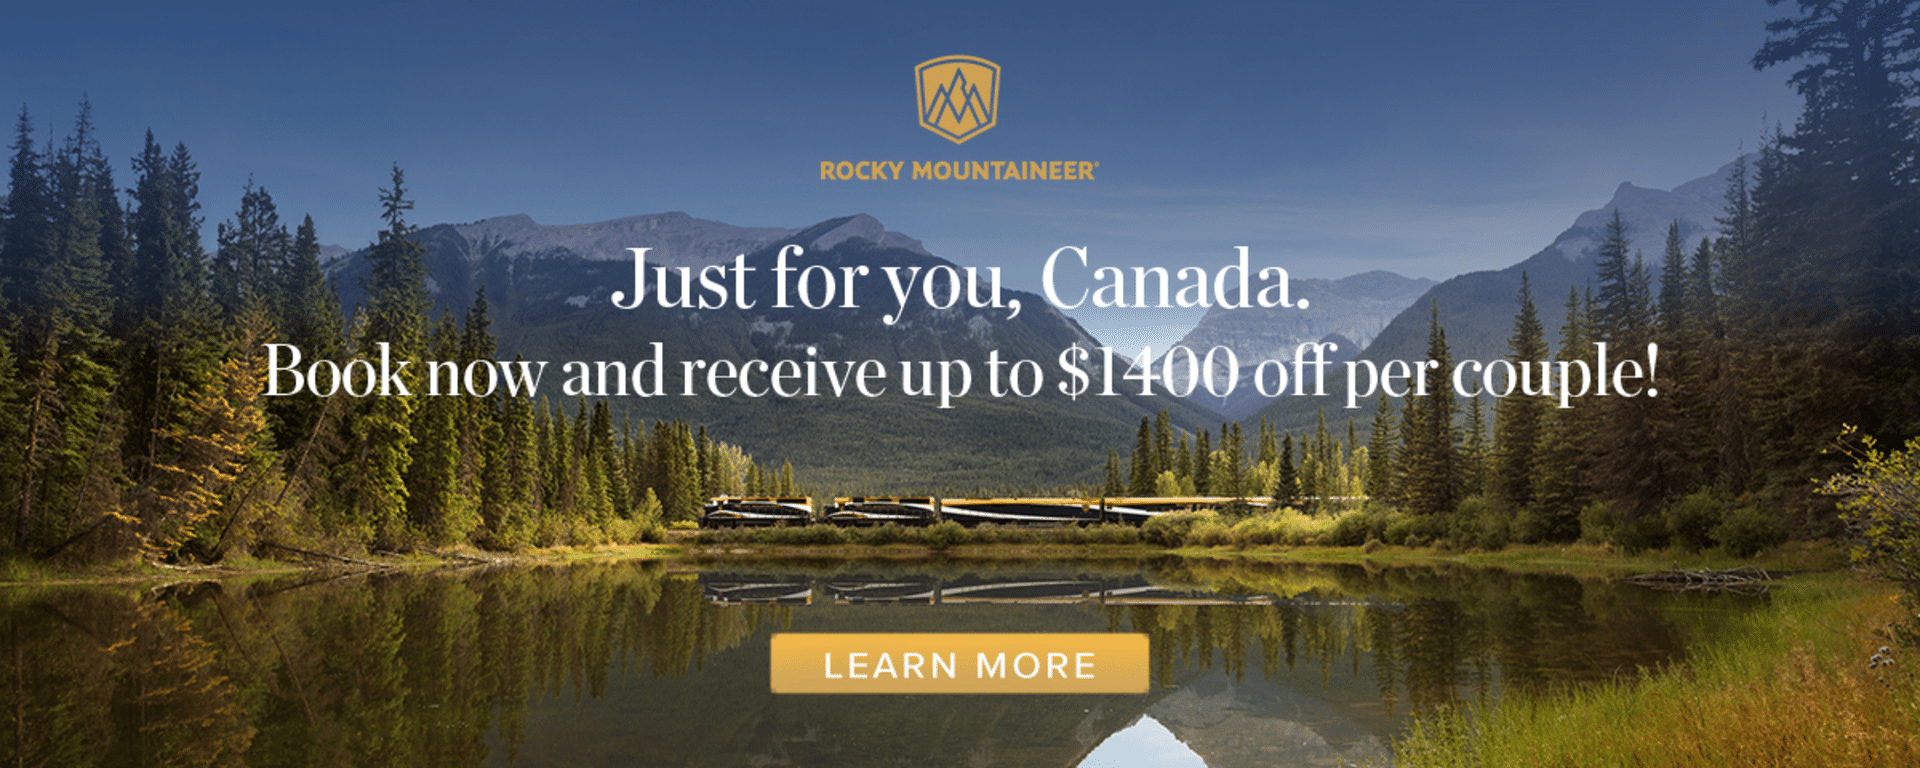 Canadian Rocky Mountains - Rocky Mountaineer - Just For You Canada